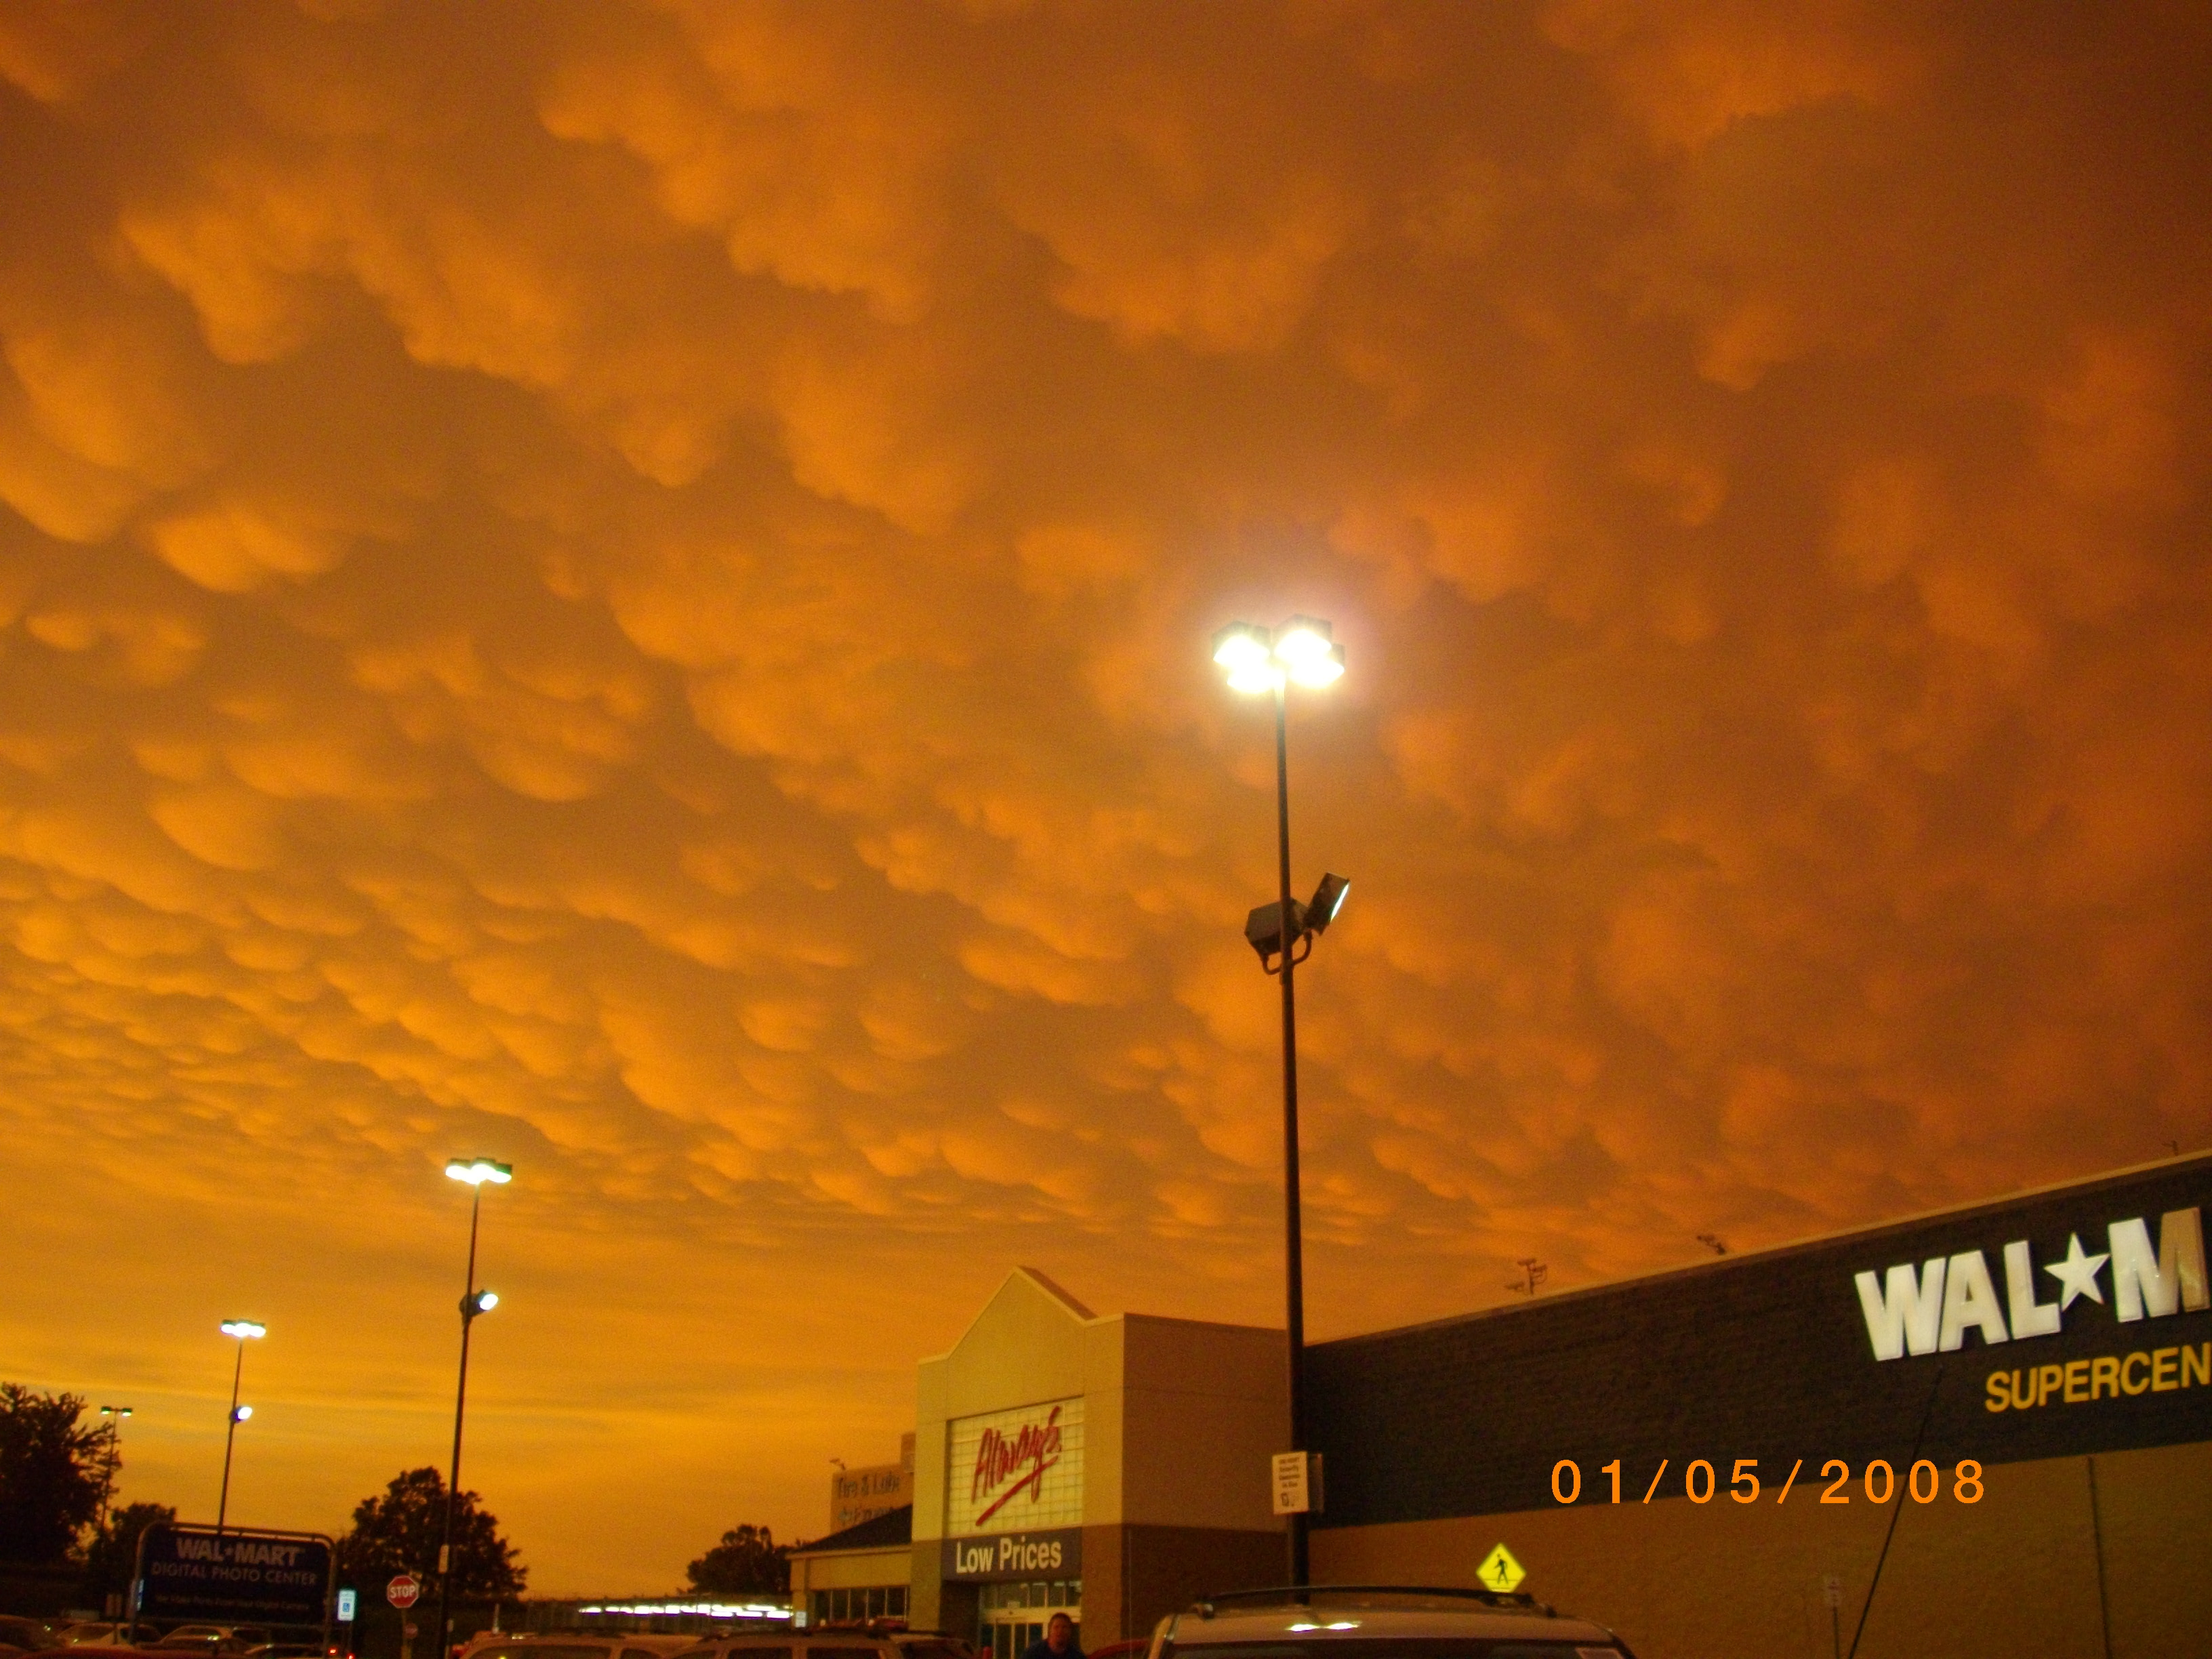 Interesting storm clouds over Newton's Wal-mart